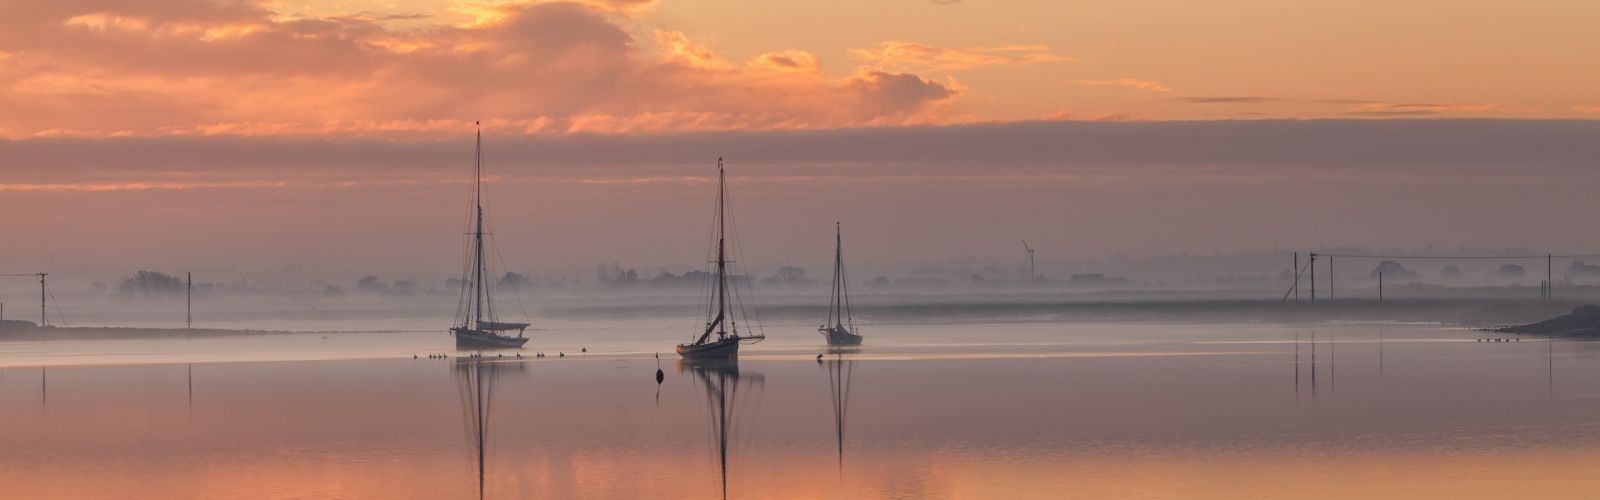 sky sea sunset night clouds boats reflection fog mist wallpaper